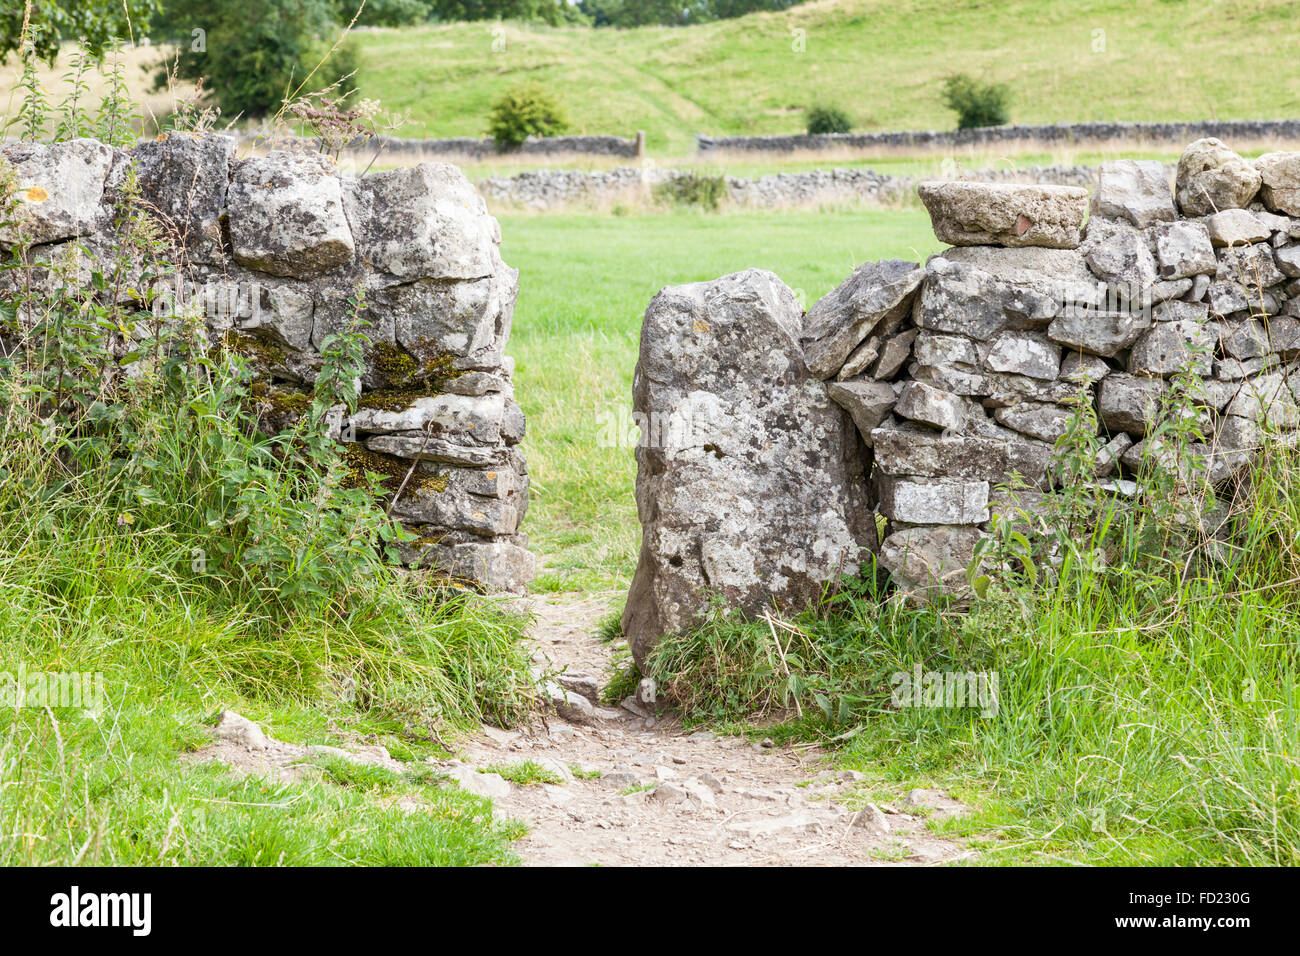 Squeeze stile, or squeezer stile, in a dry stone wall, Lathkill Dale, Derbyshire, Peak District, England, UK - Stock Image